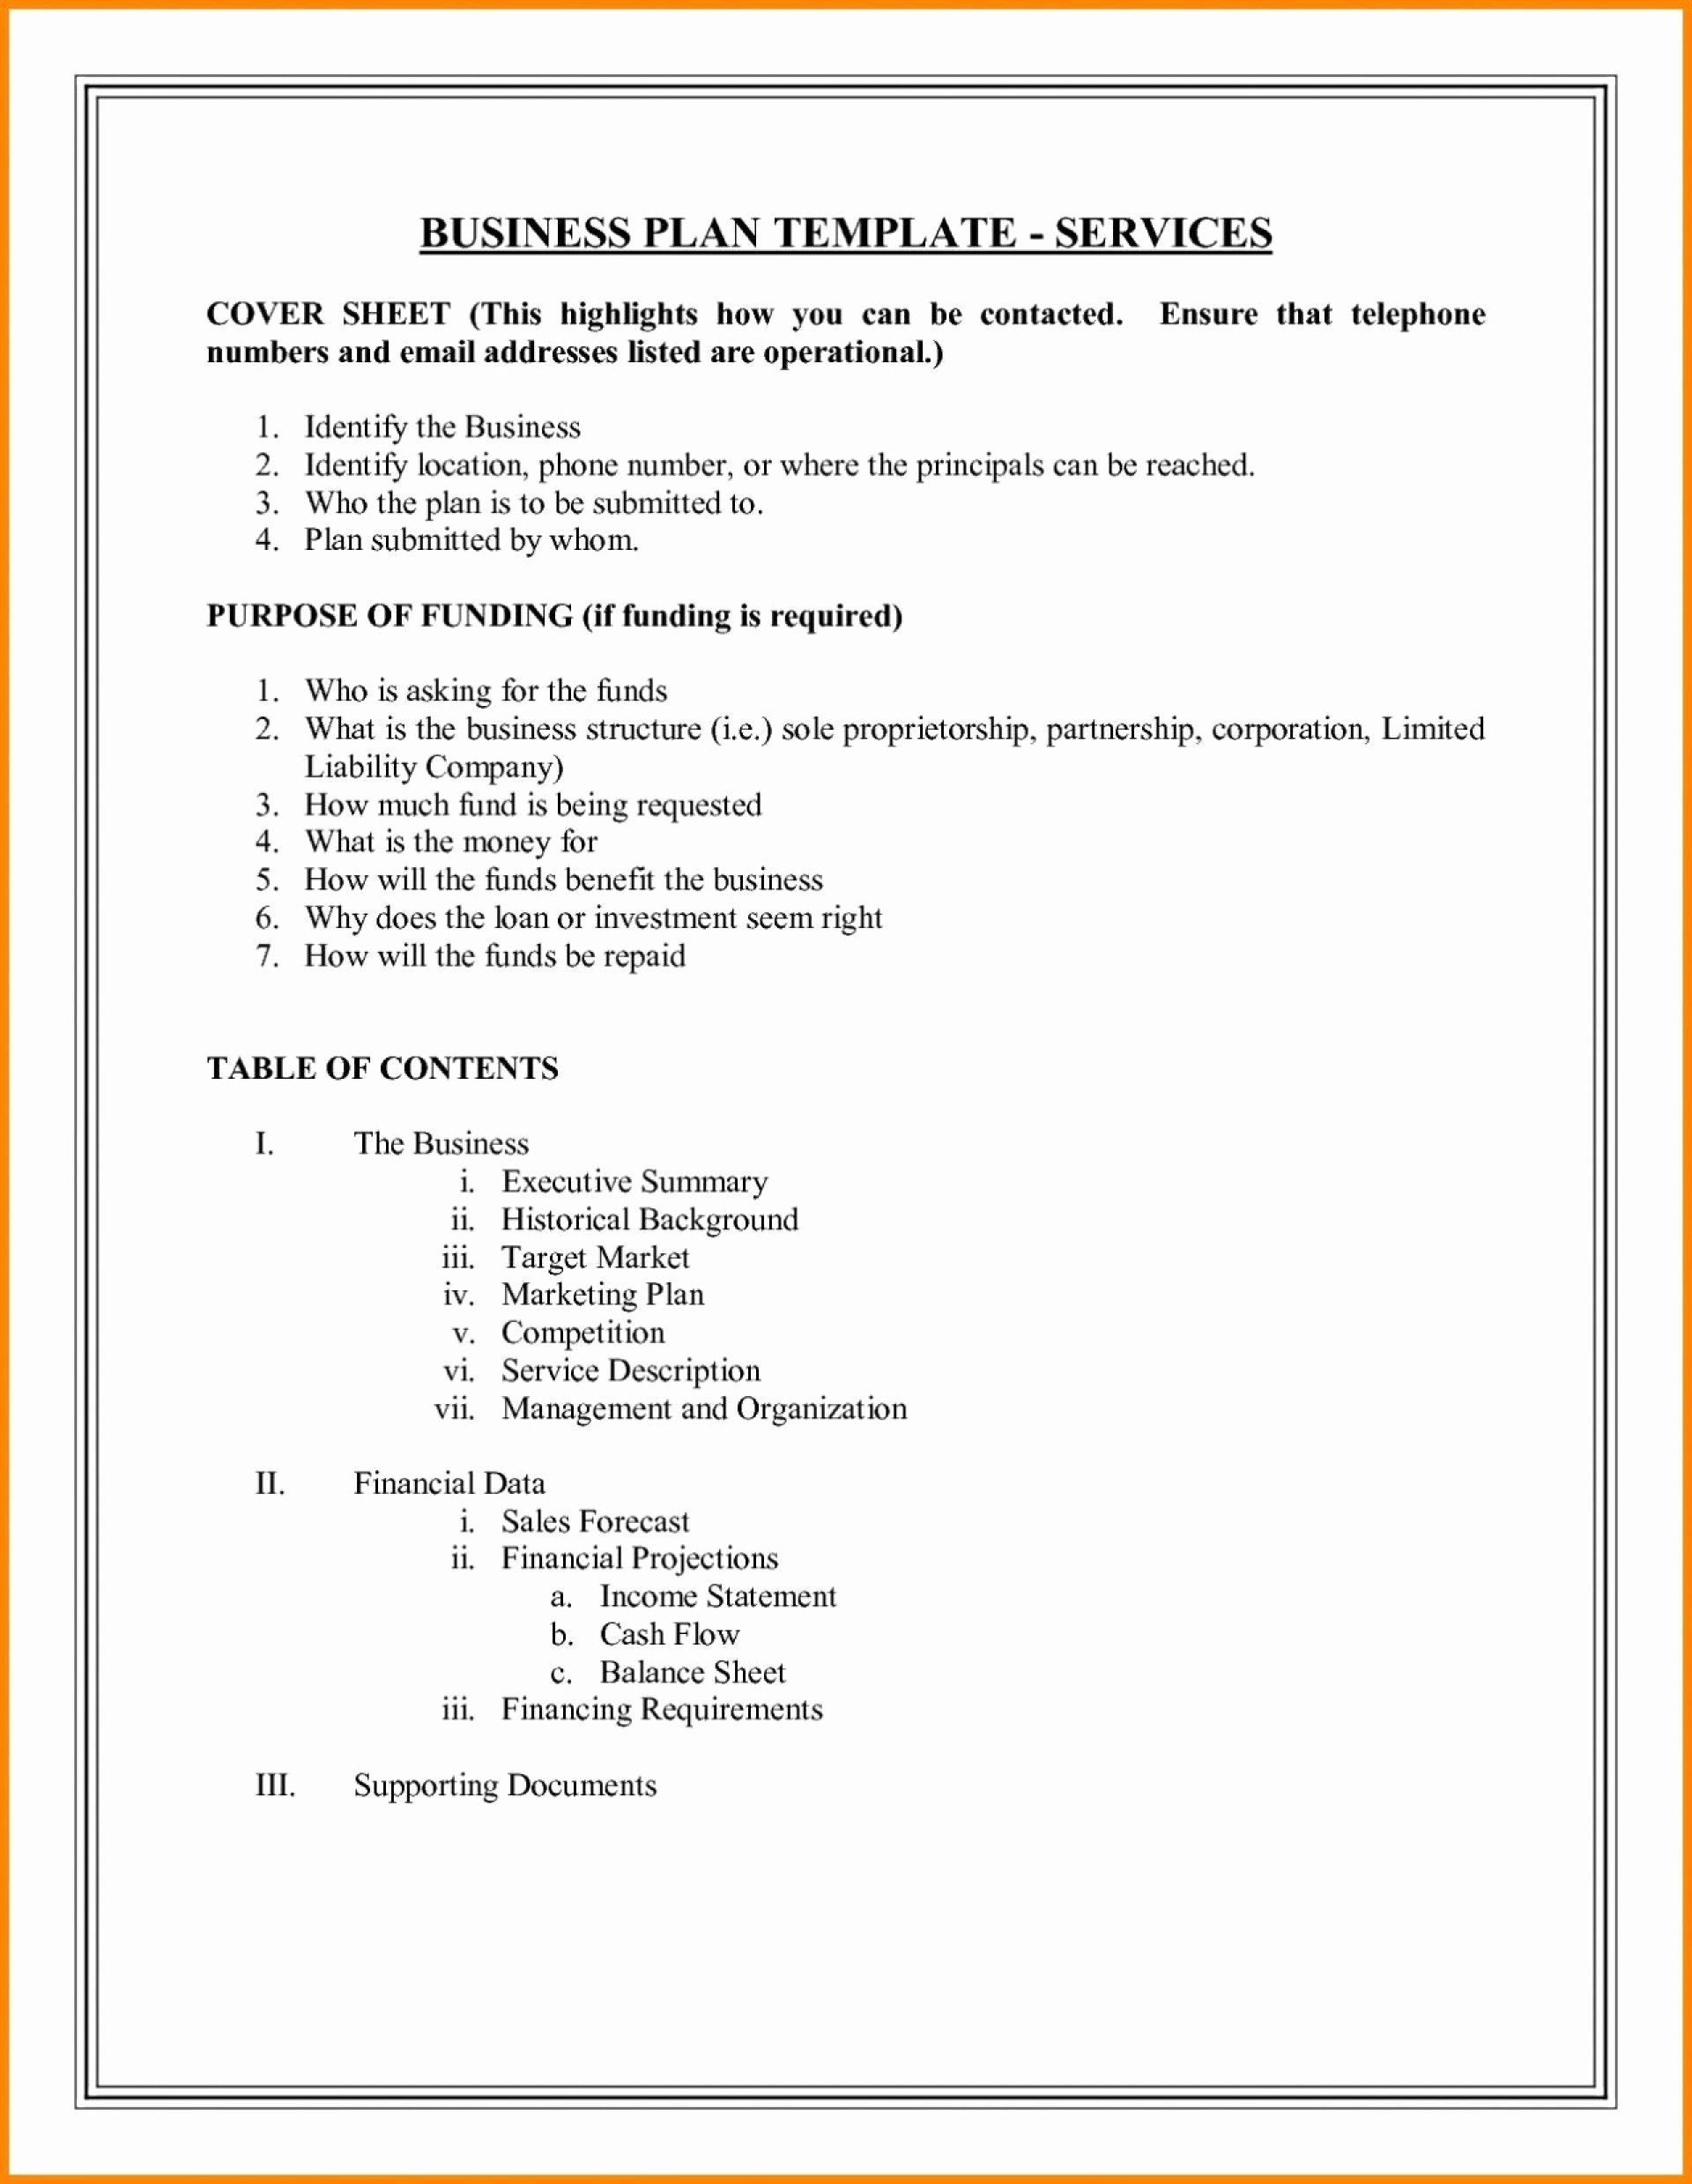 Creative Agency Business Plan Template In 2020 Business Plan